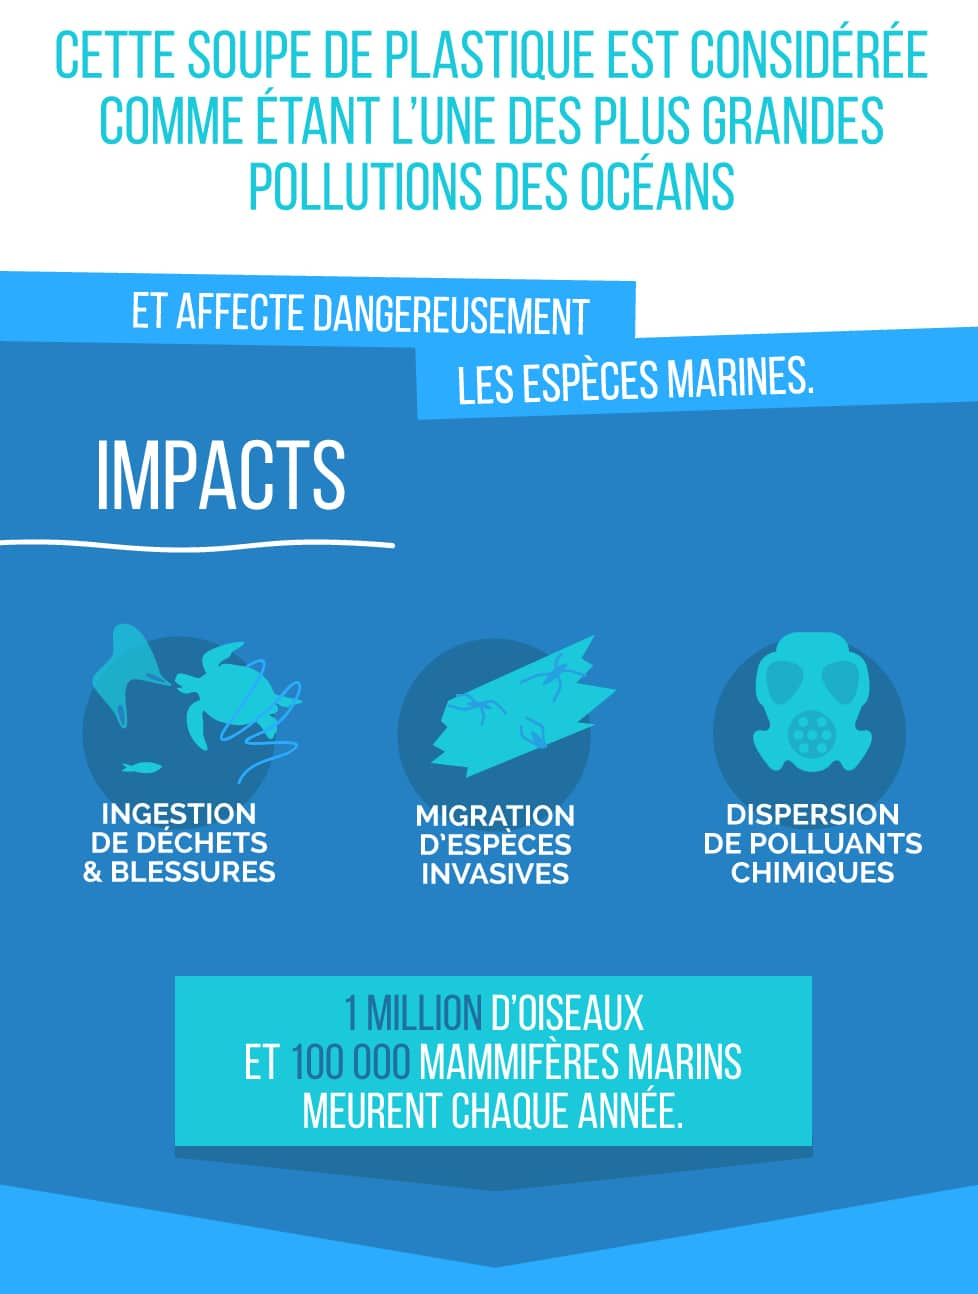 Impacts 7eme Continent